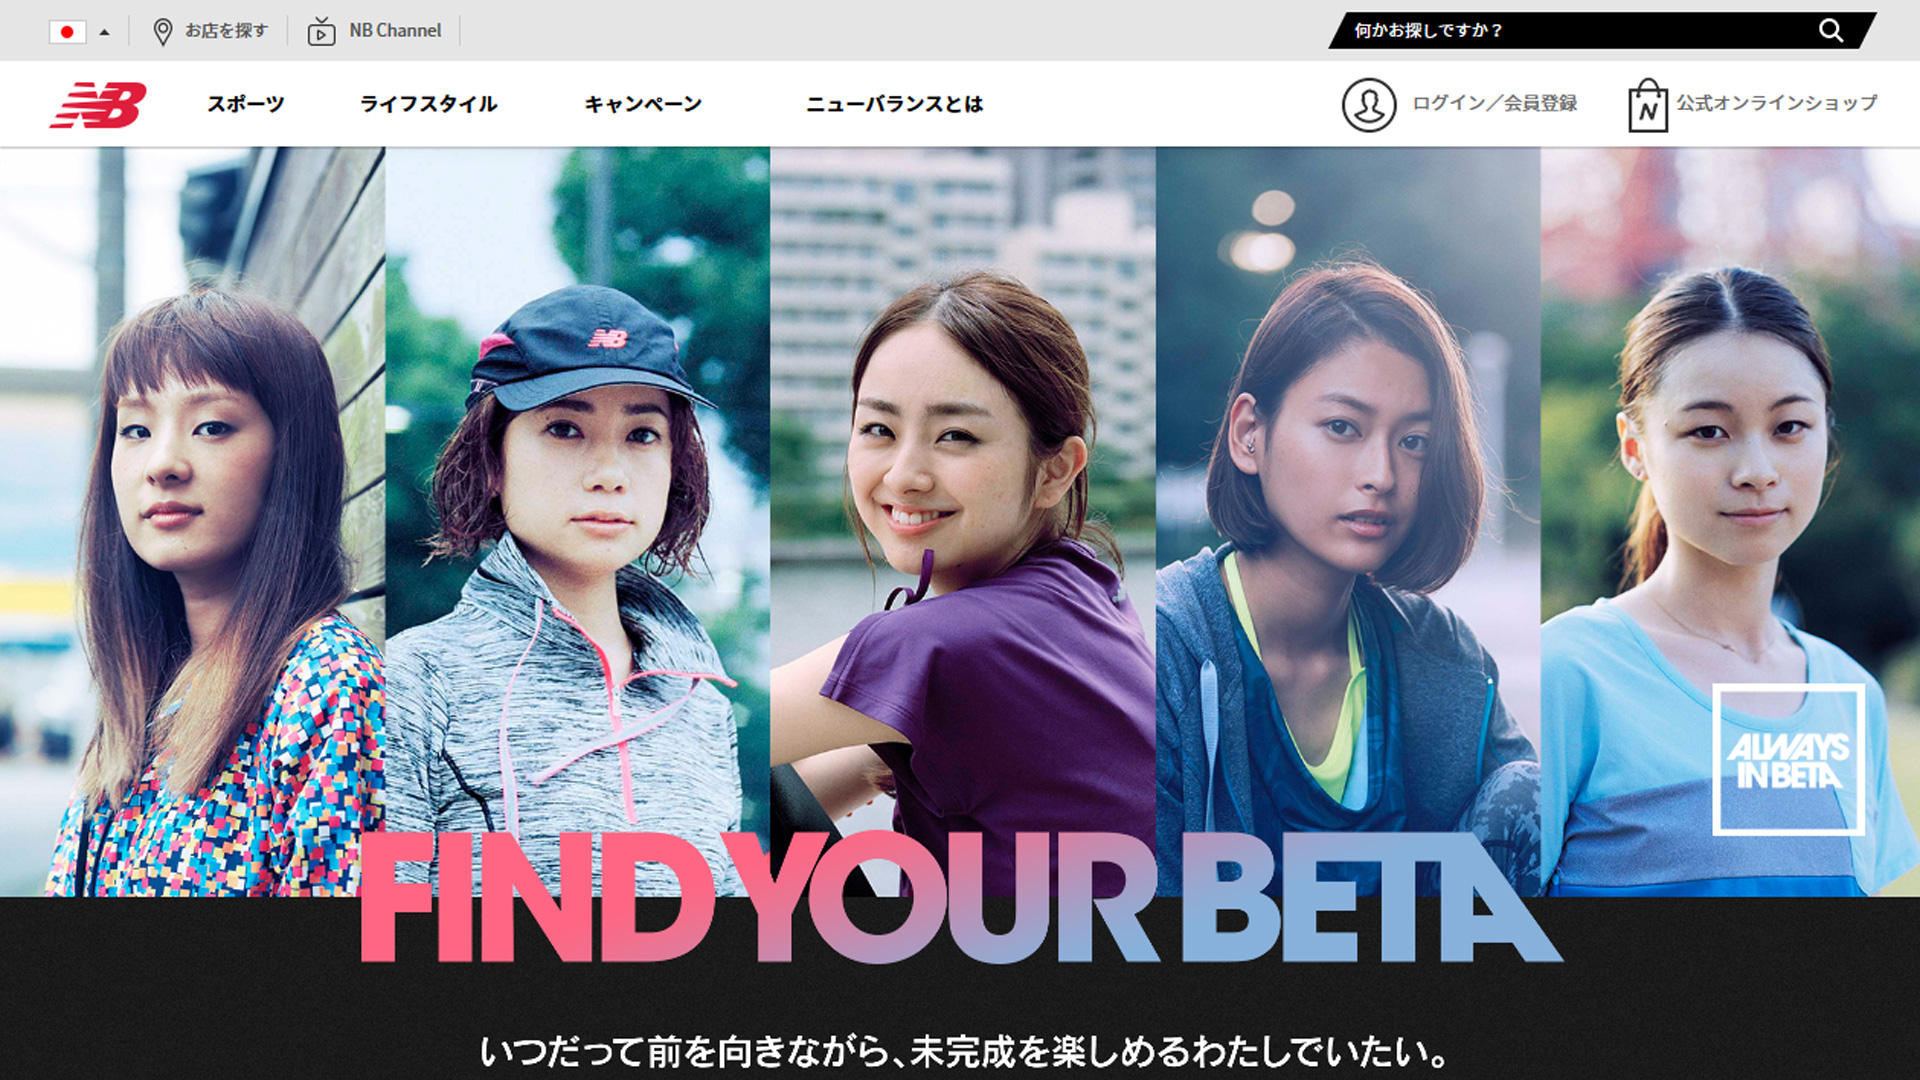 New Balance Japan OWNED MEDIA 「BETA MAG」「goodmorning sunshine」「FIND YOUR BETA」 制作 ・ 運用